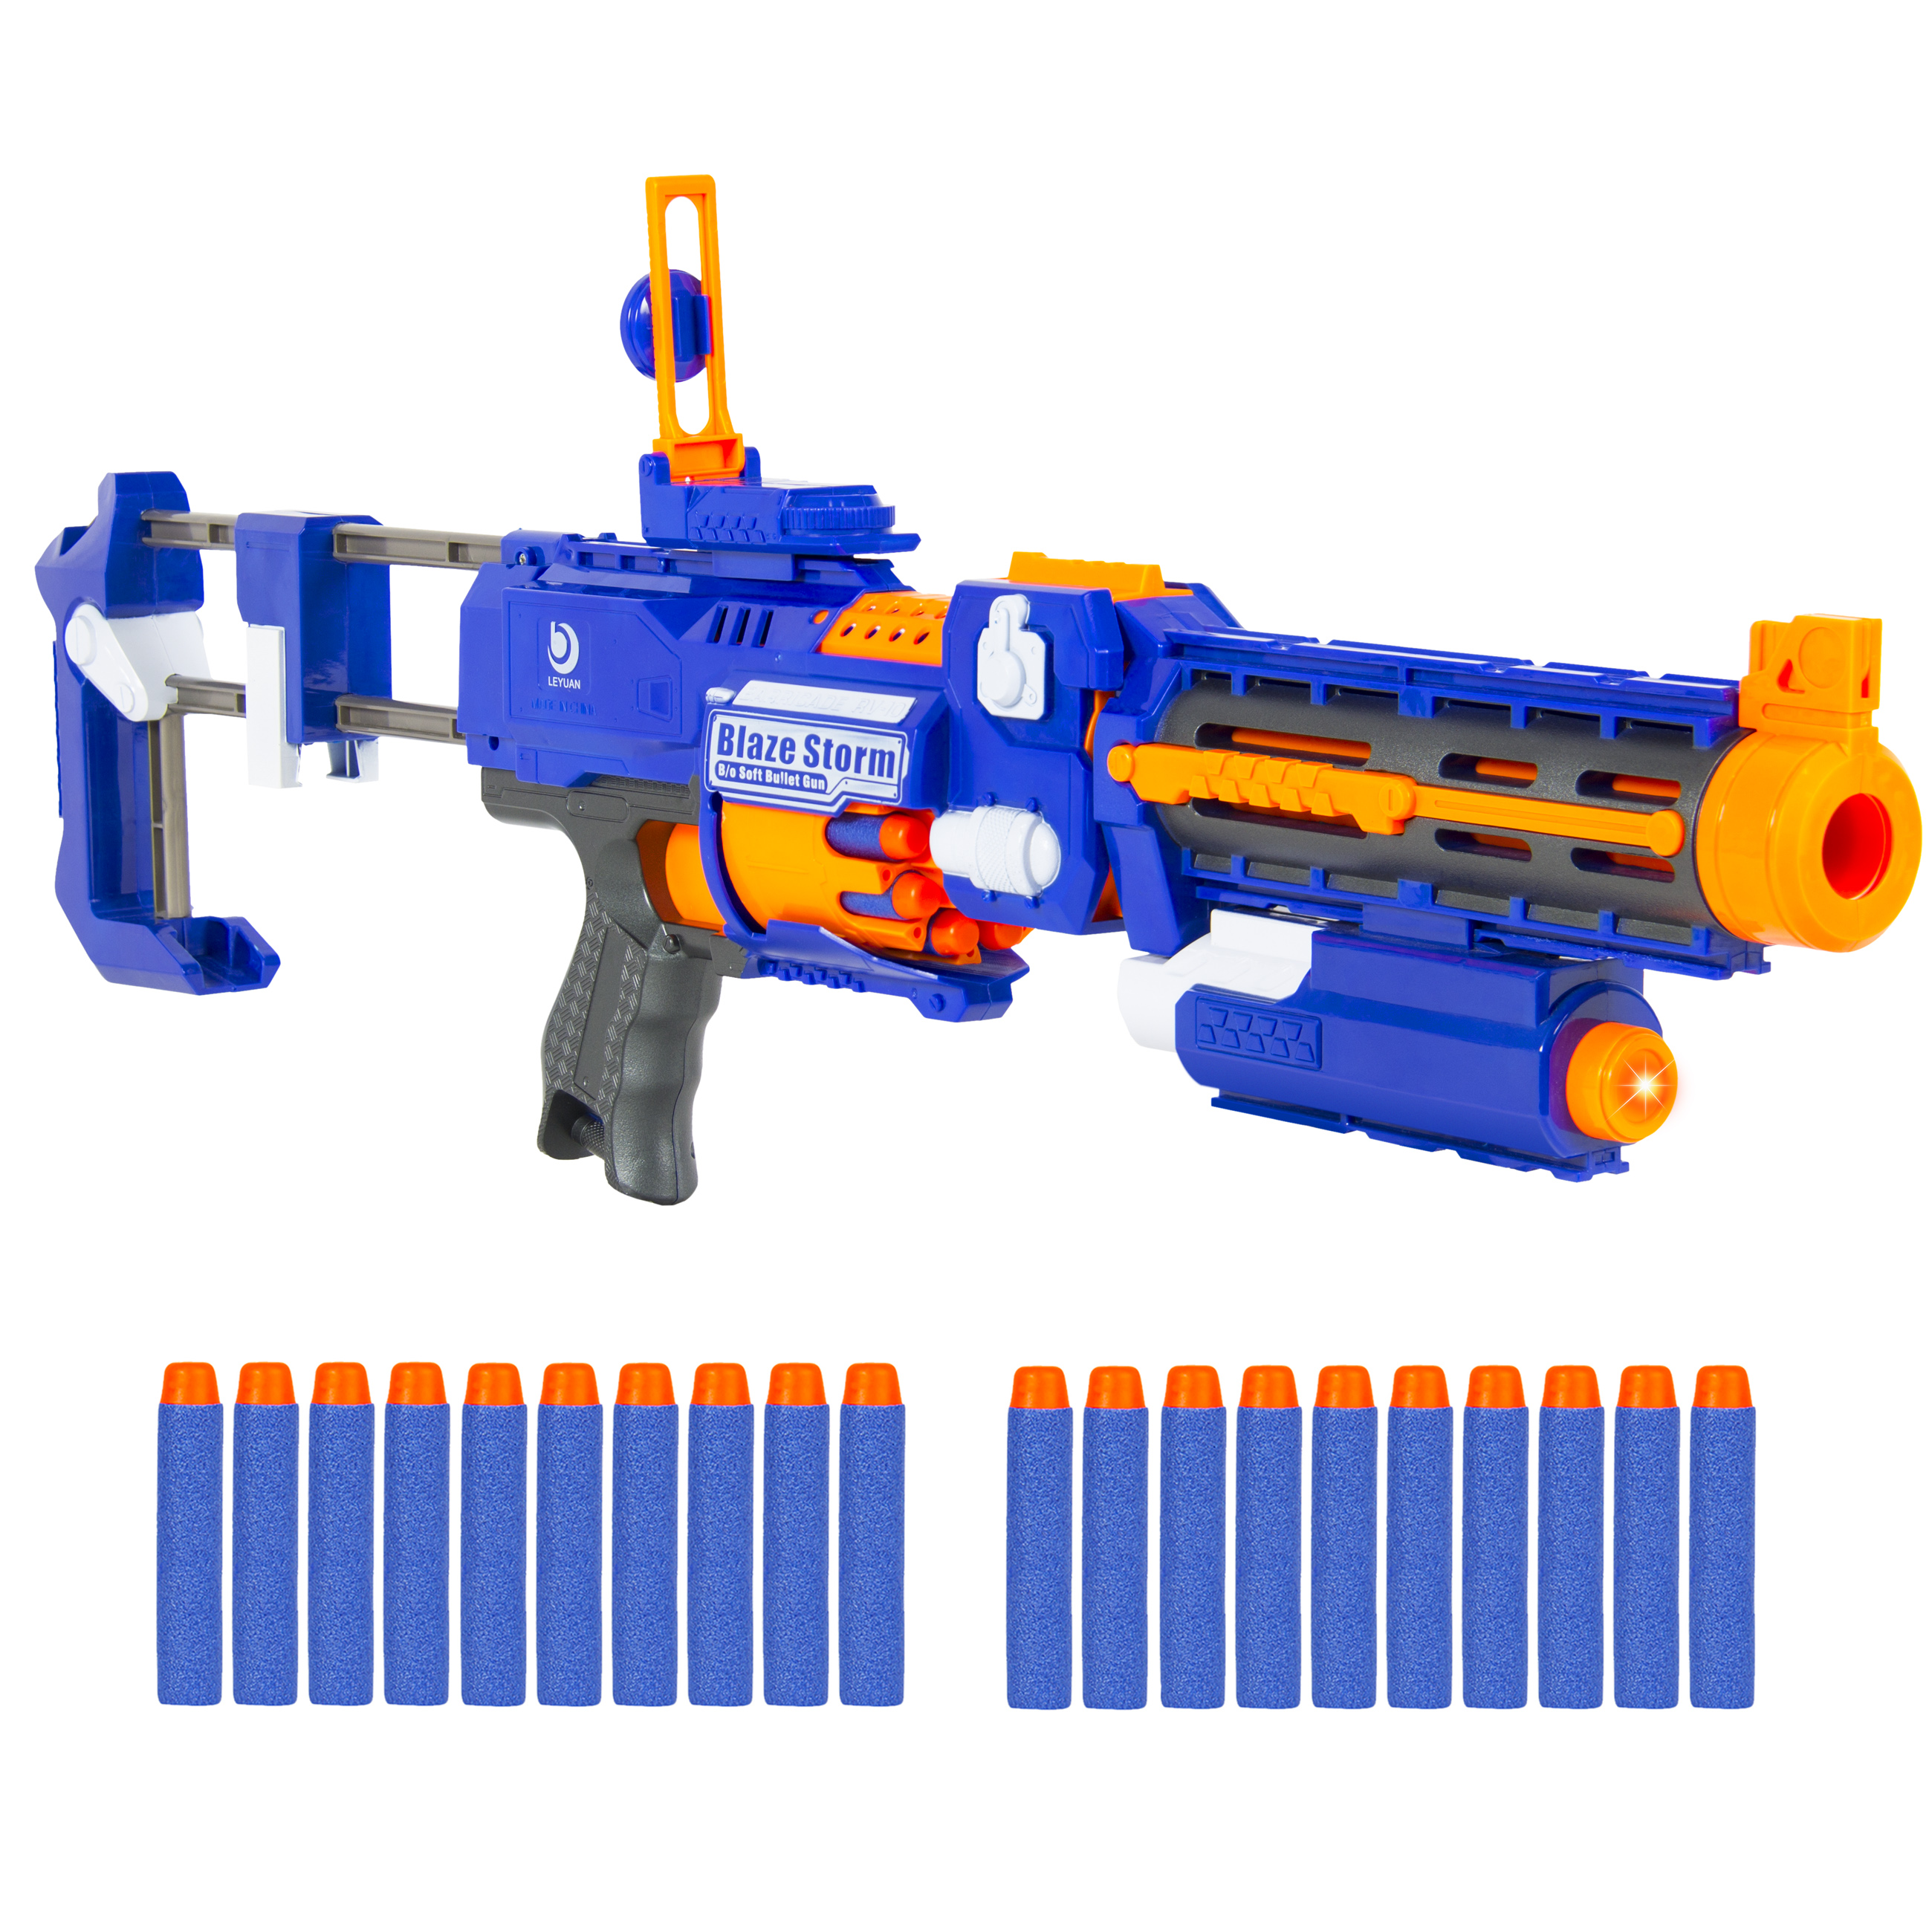 "20"" Foam Bullet Blaster Toy Gun, Long Distance Shooing Range, 20 Darts Included"